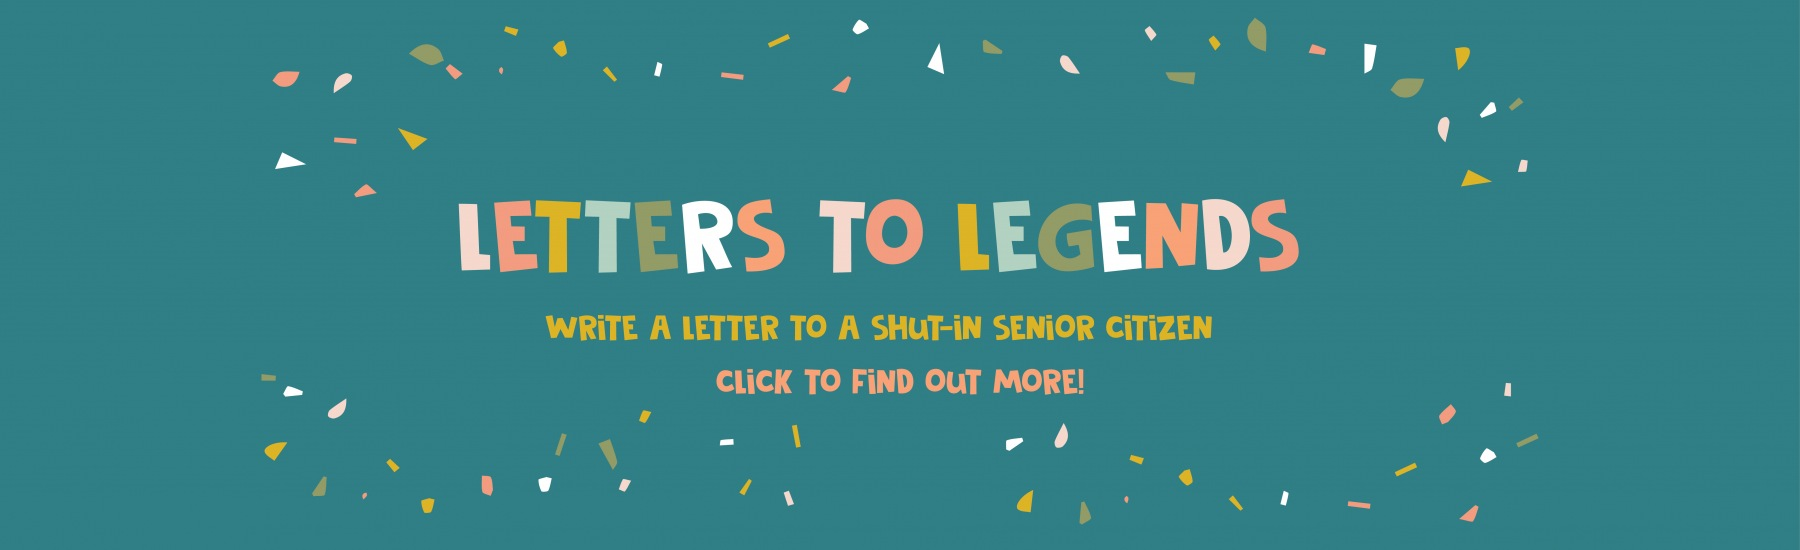 Letters to Legends